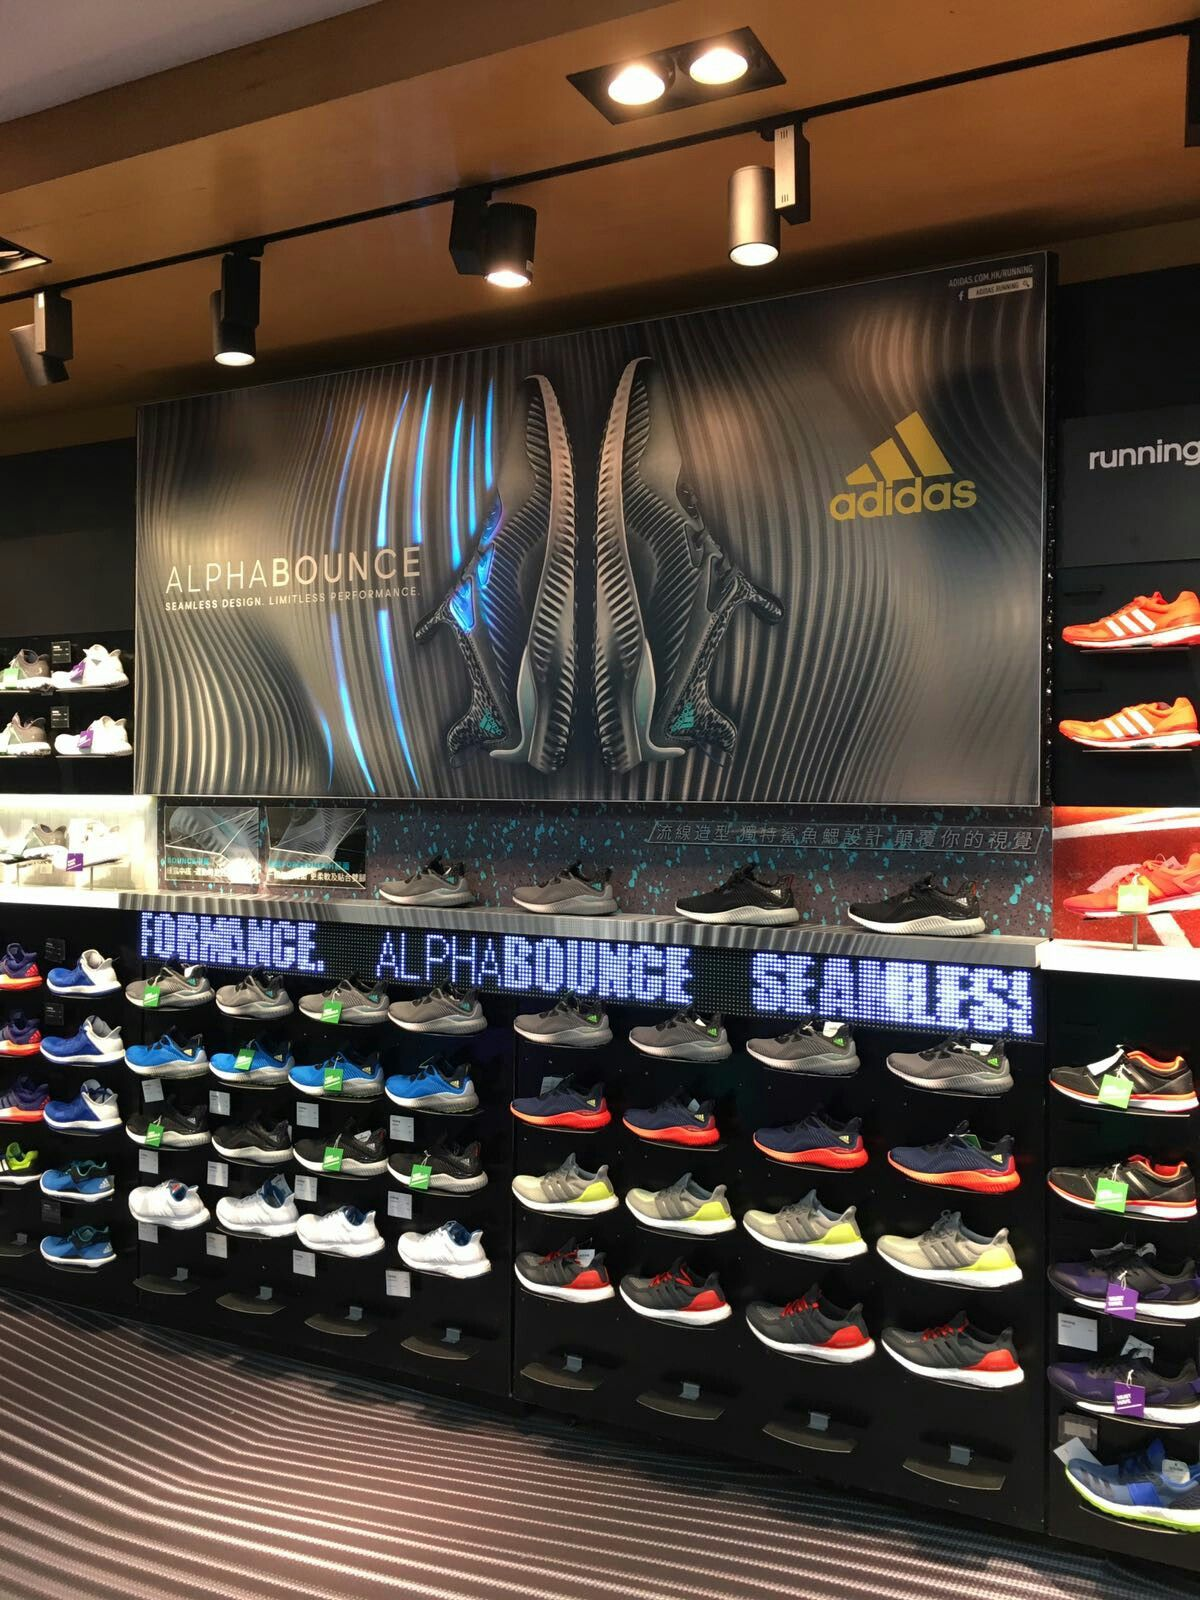 0df40766b86 Alpha Bounce - adidas Hong Kong | Retail / visual merchandising ...